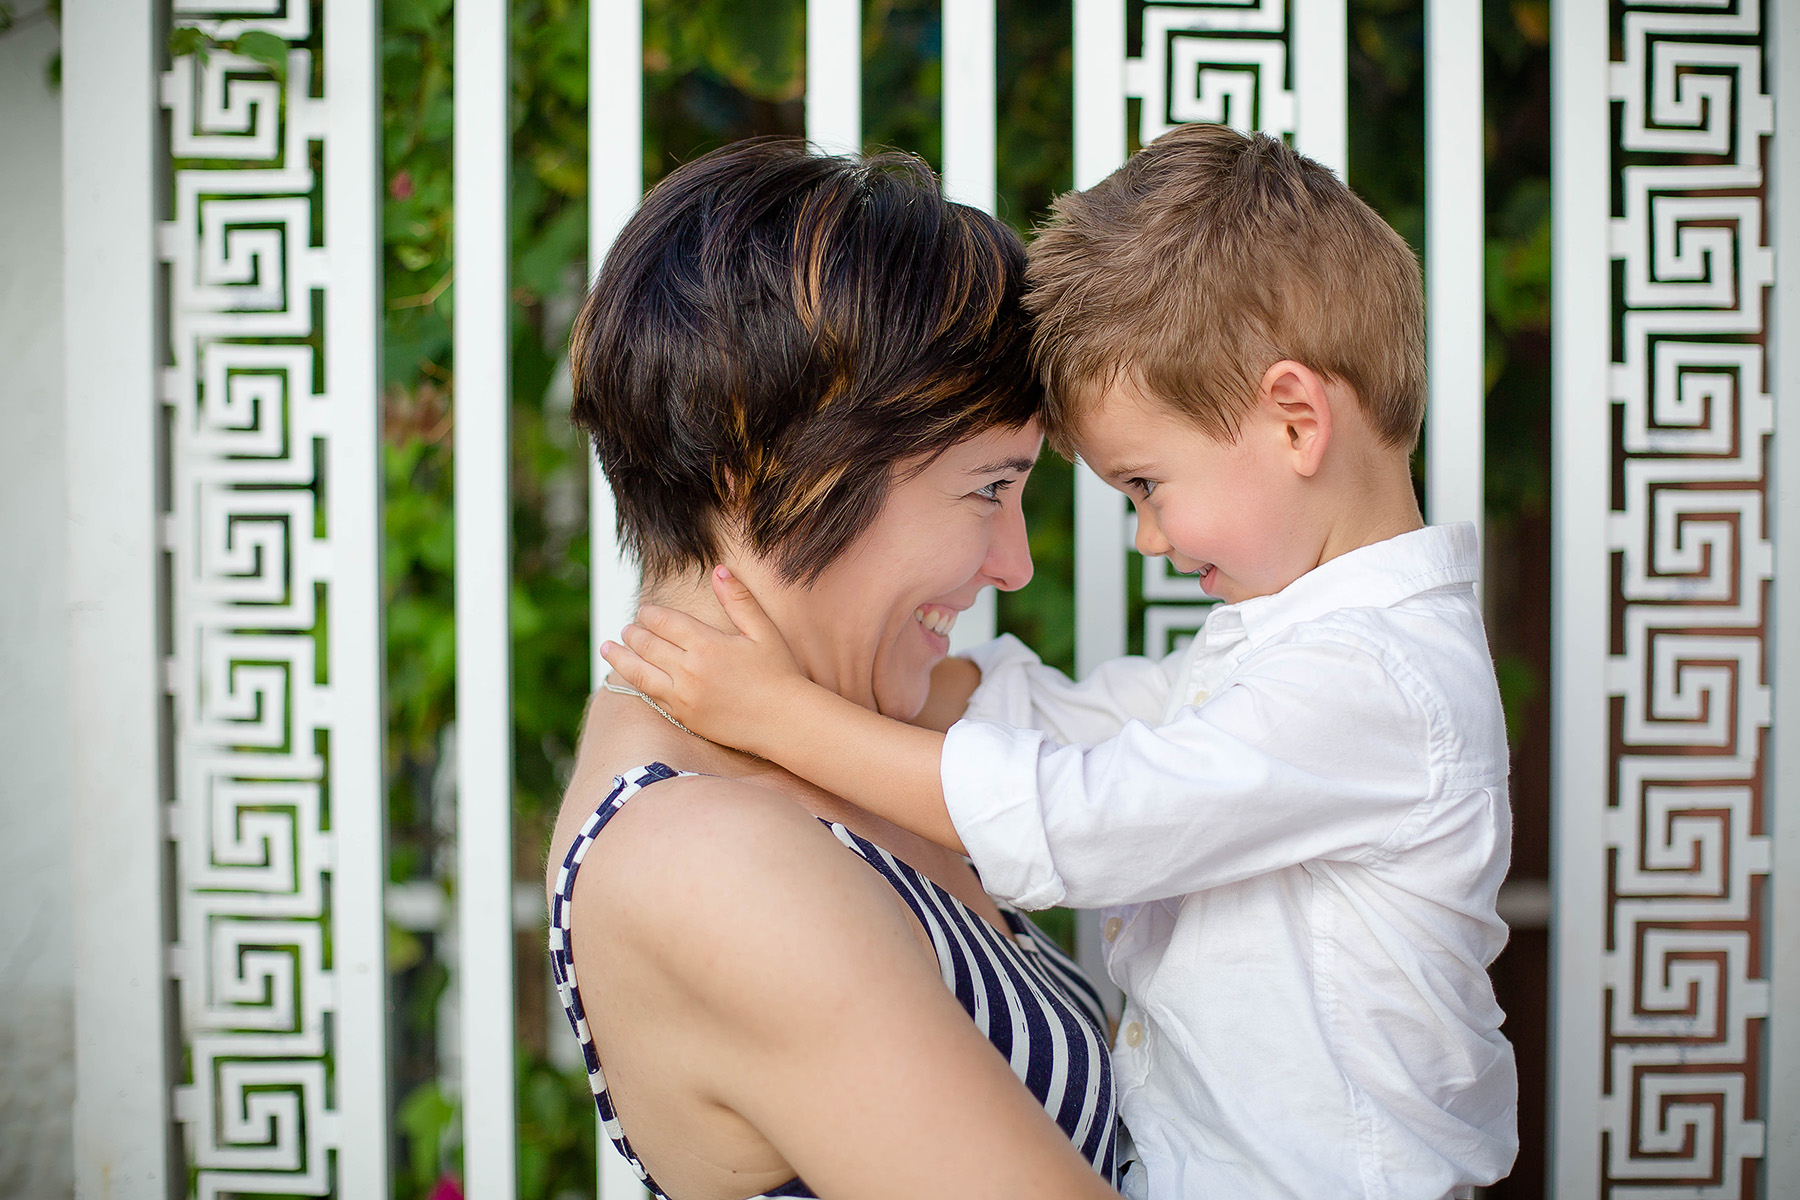 delray-beach-family-portrait-moments-matter-mom-son-beautiful-moment-photography.jpg